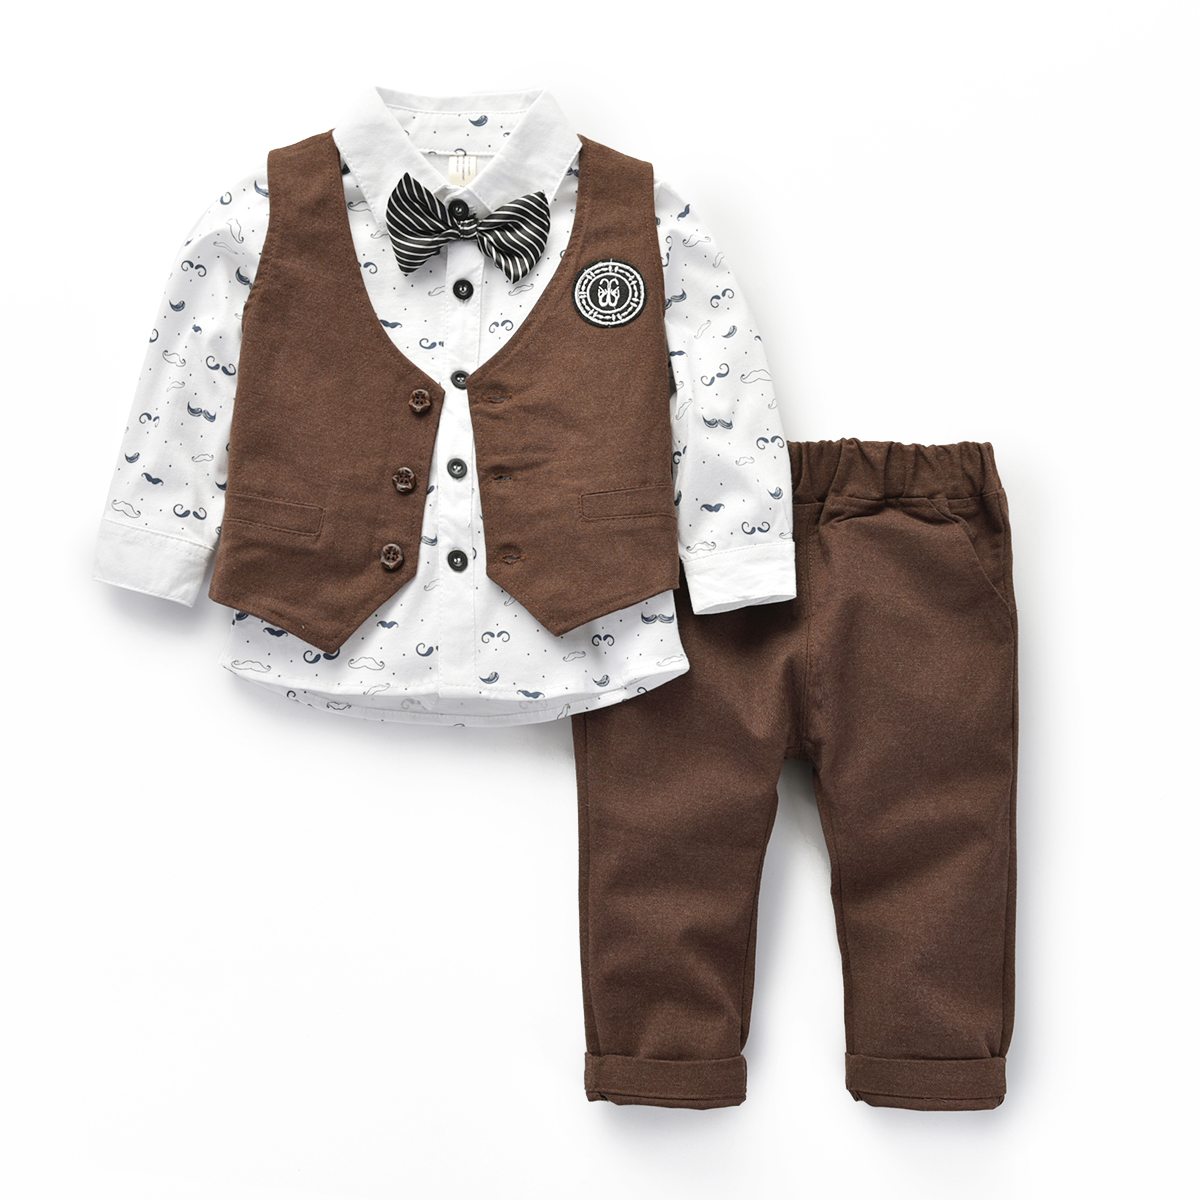 12 Month Newborn Baby Boys Clothes Boy Suit Gentleman Set For Baby Children Formal Kids  Christening Suits For Boys